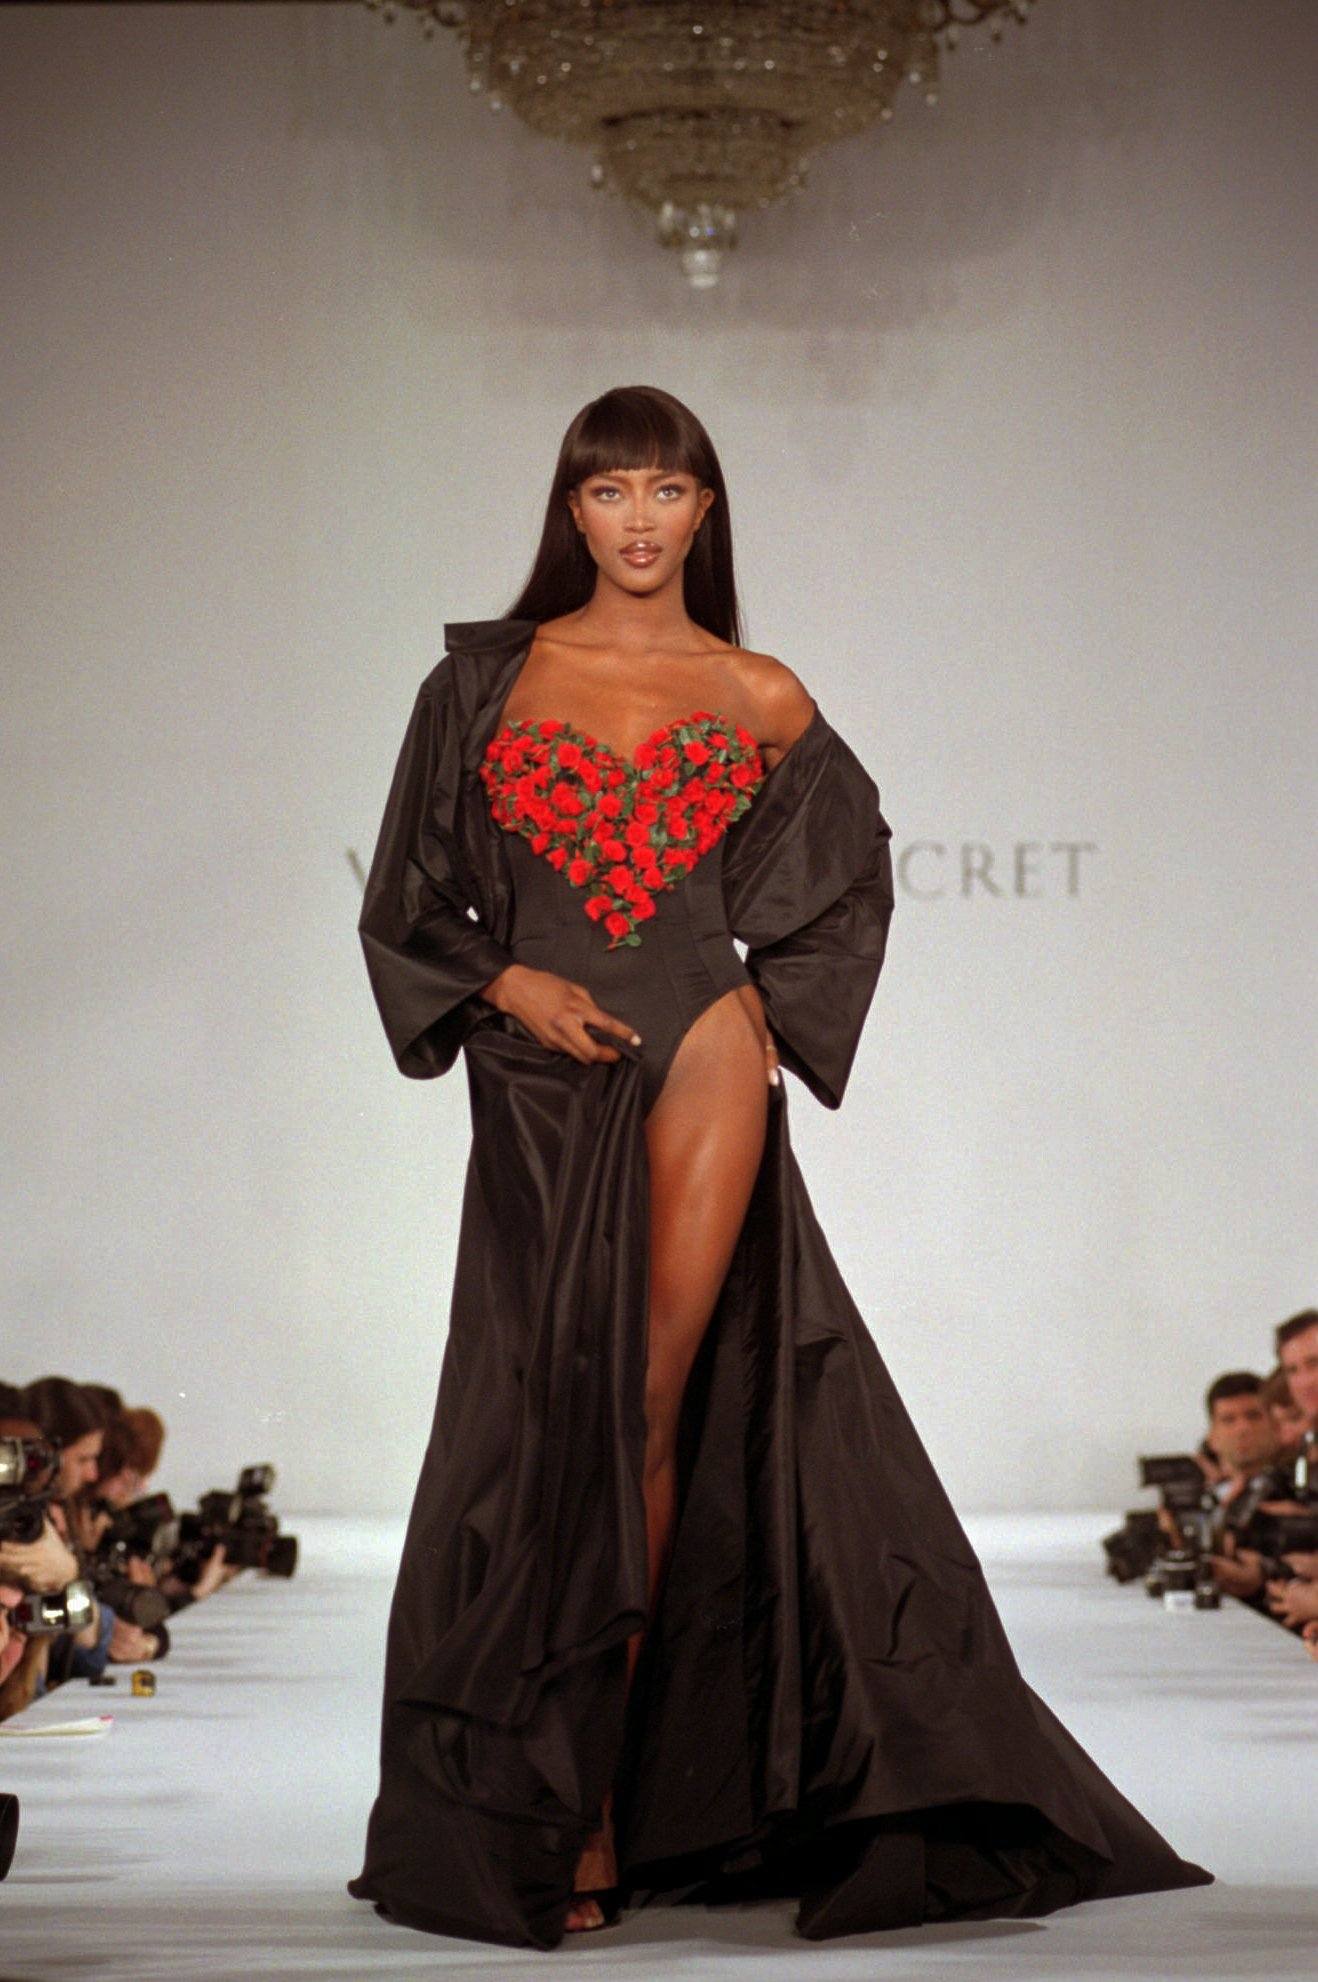 Naomi Campbell's Most Iconic Runway Moments